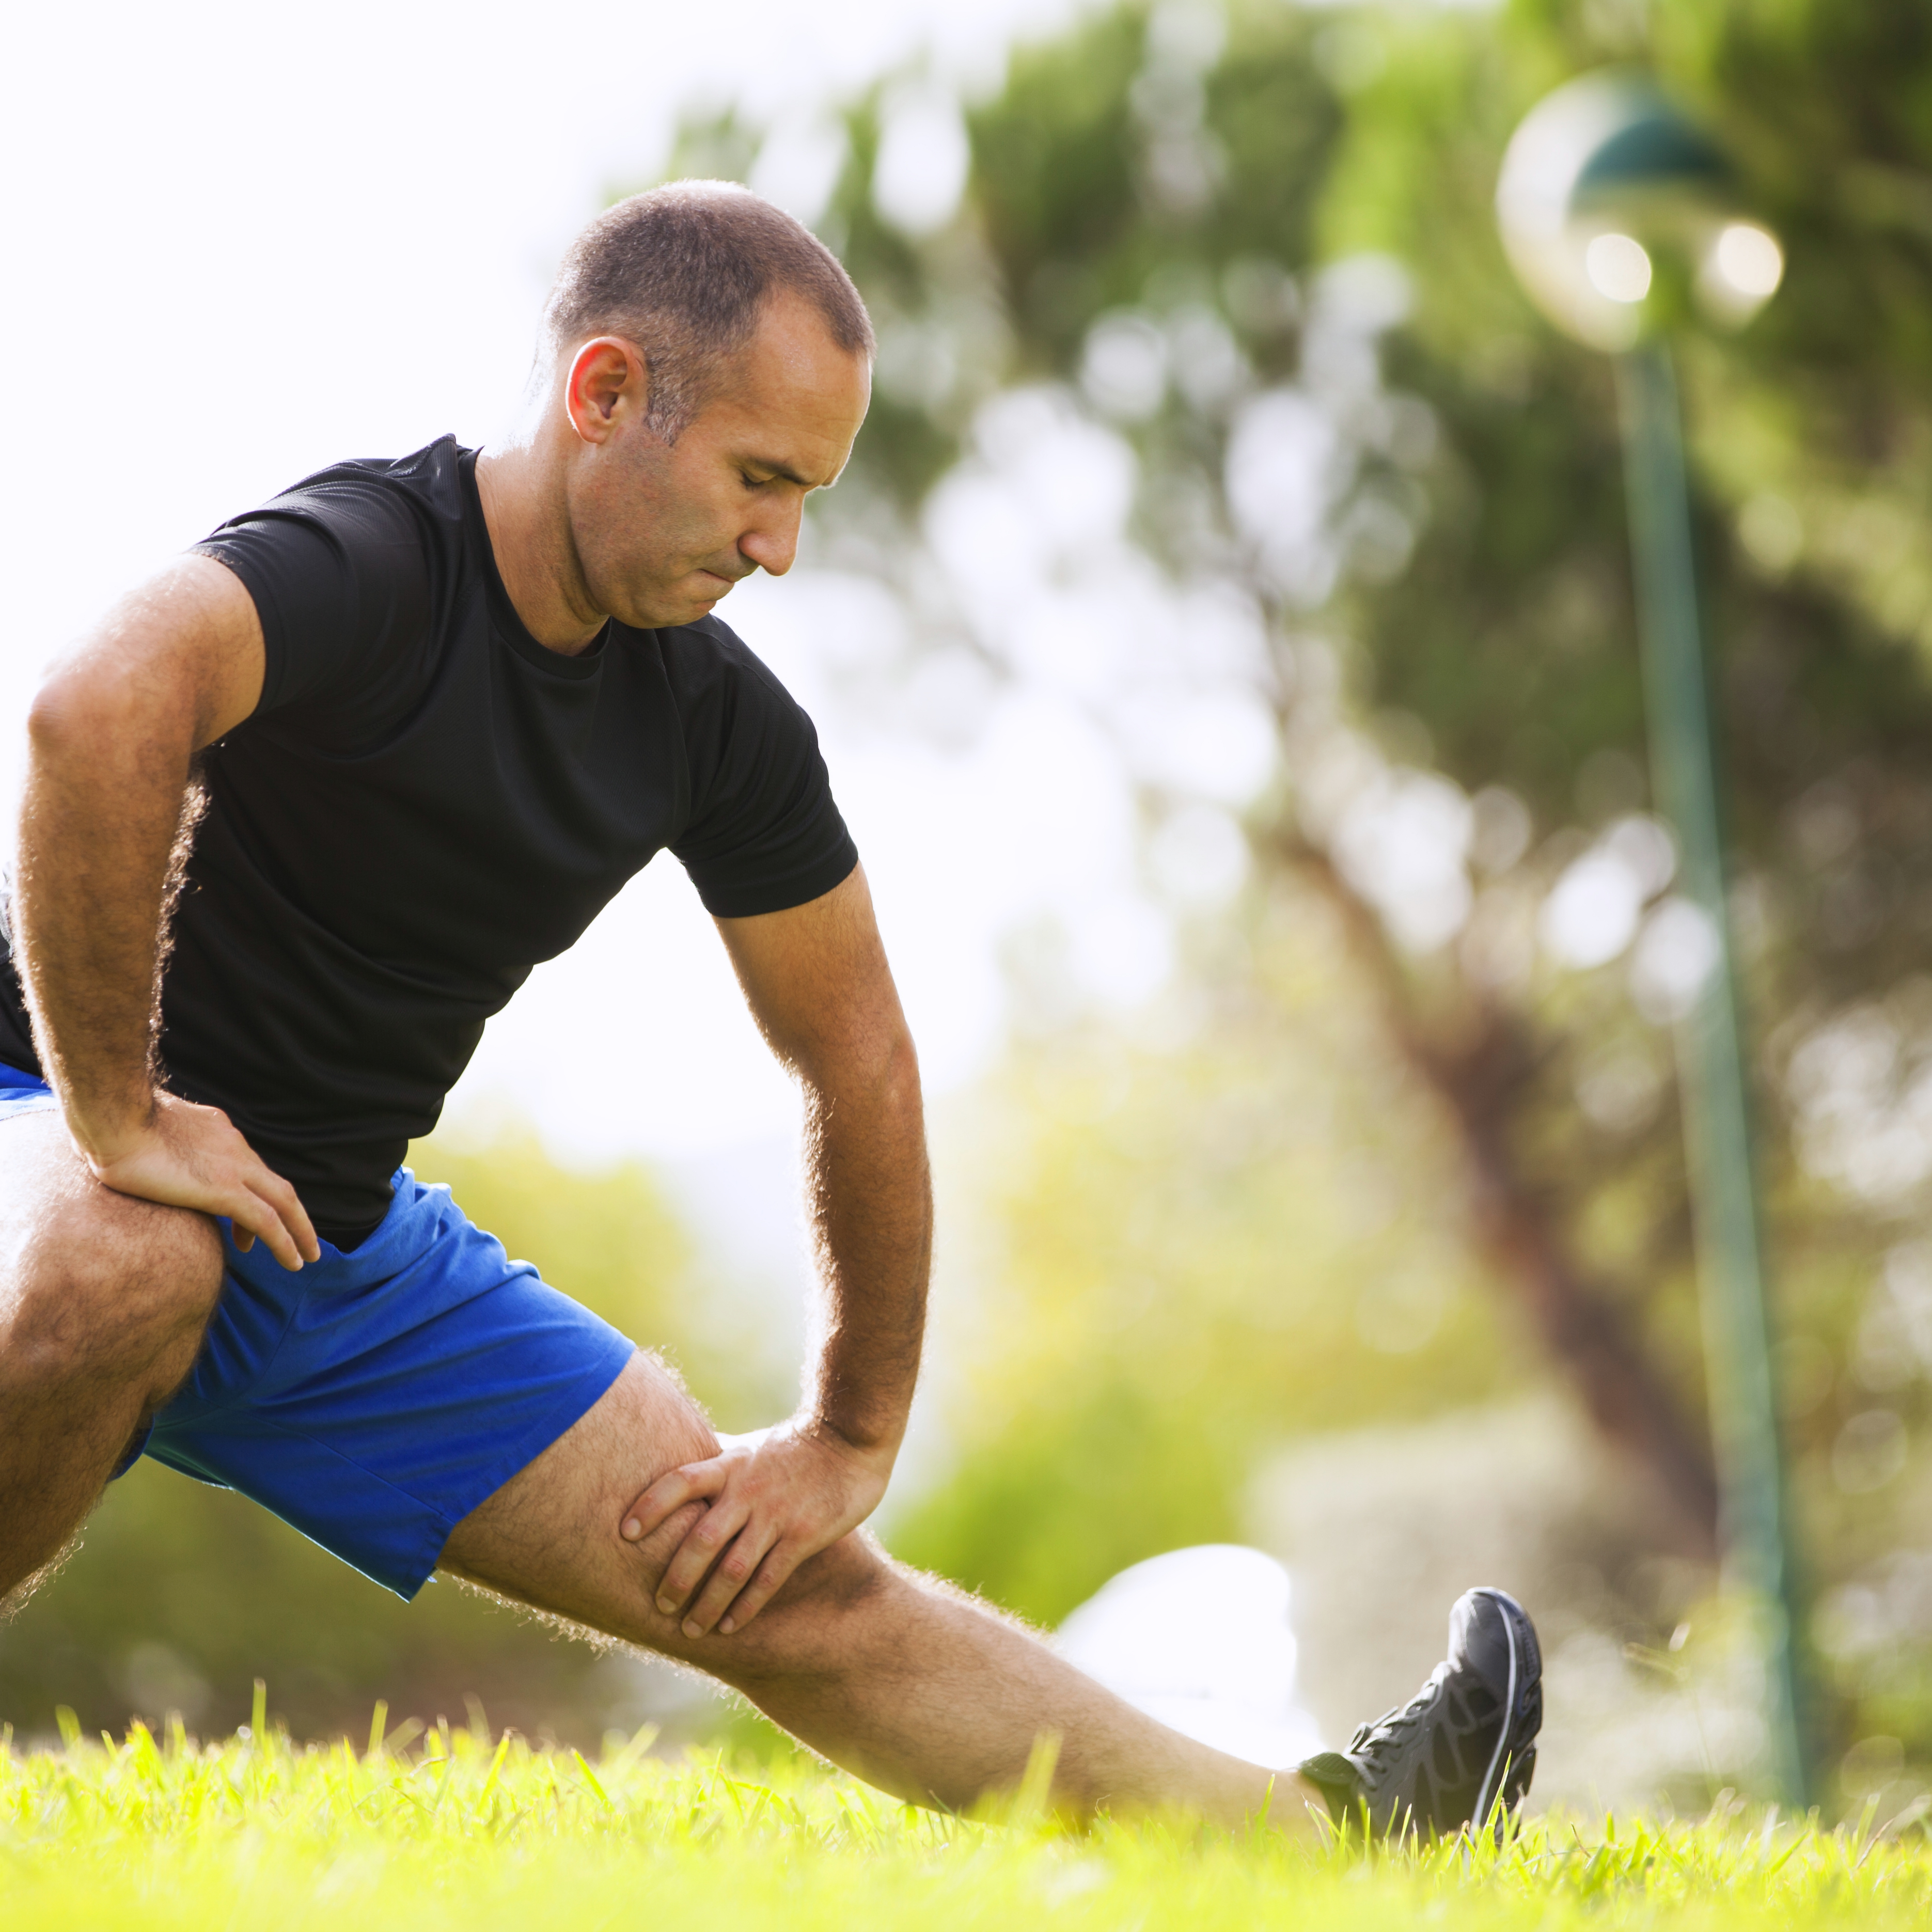 Mature man exercises in a park